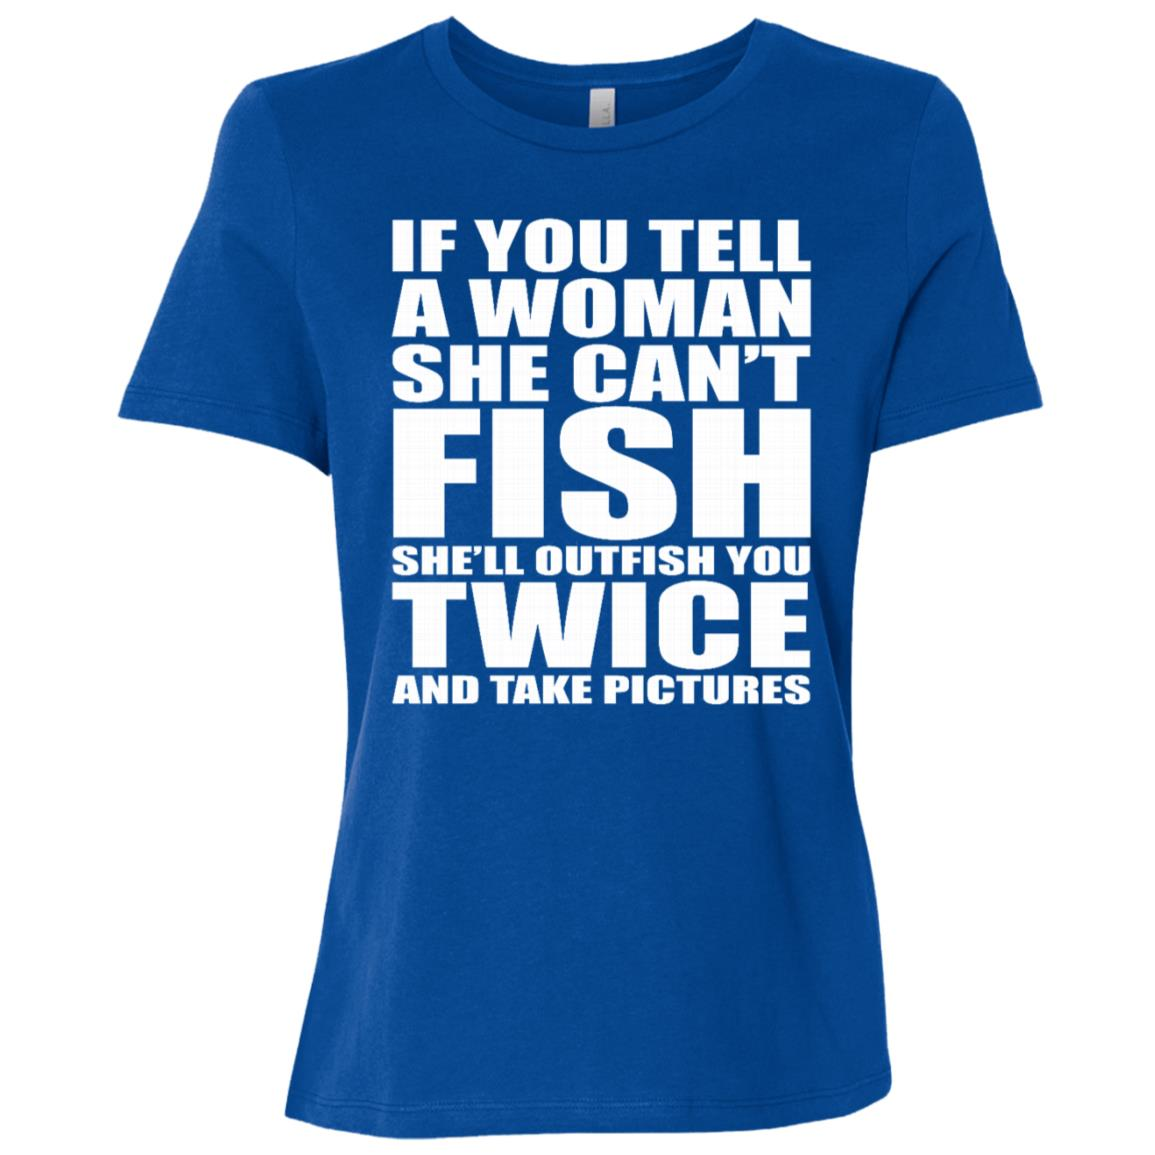 She'll Outfish You Twice & Take Pictures Funny Fish Ls Women Short Sleeve T-Shirt